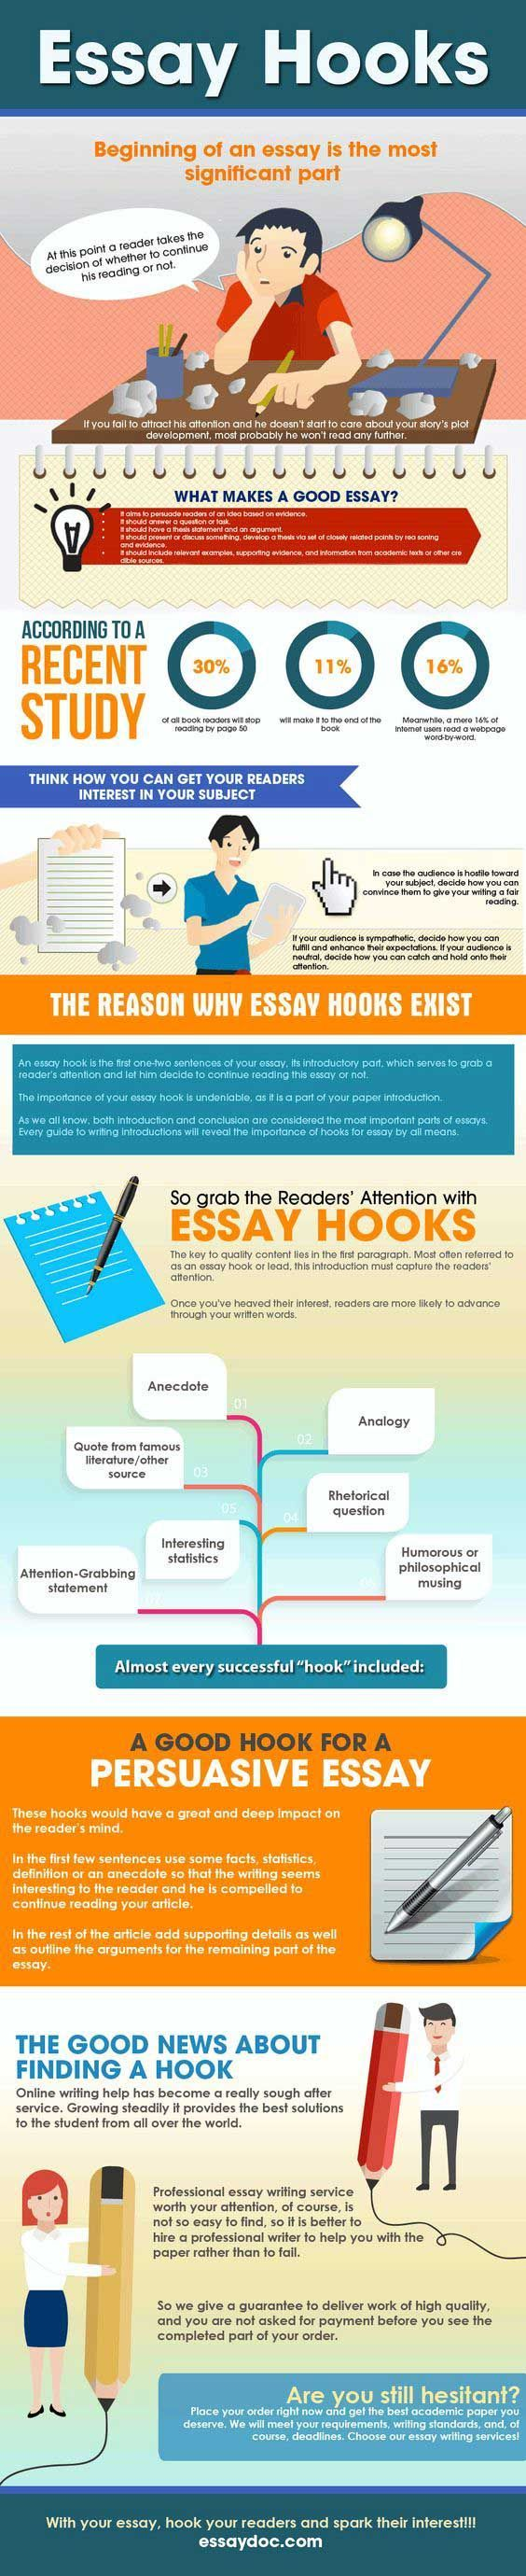 editing essay cheap mba essay editing website ca essay editing        Or just use Google Docs